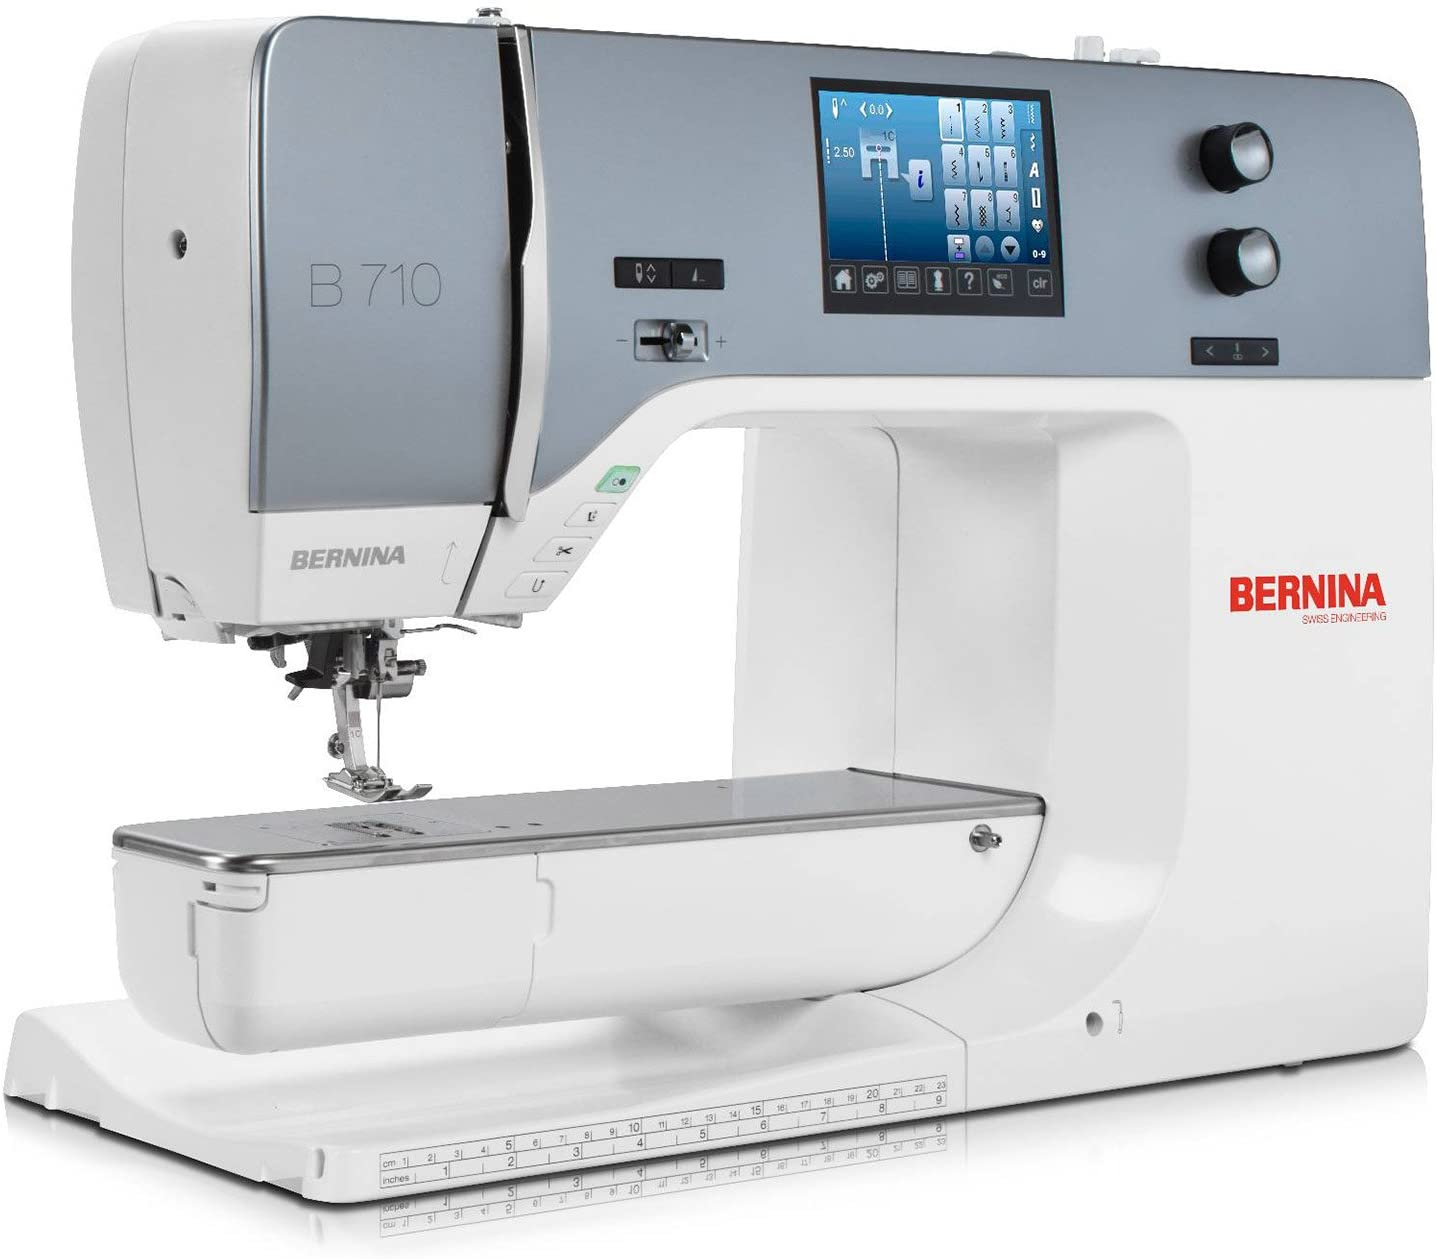 Bernina 4250229844787 - Maquina de Coser 710: Amazon.es: Hogar